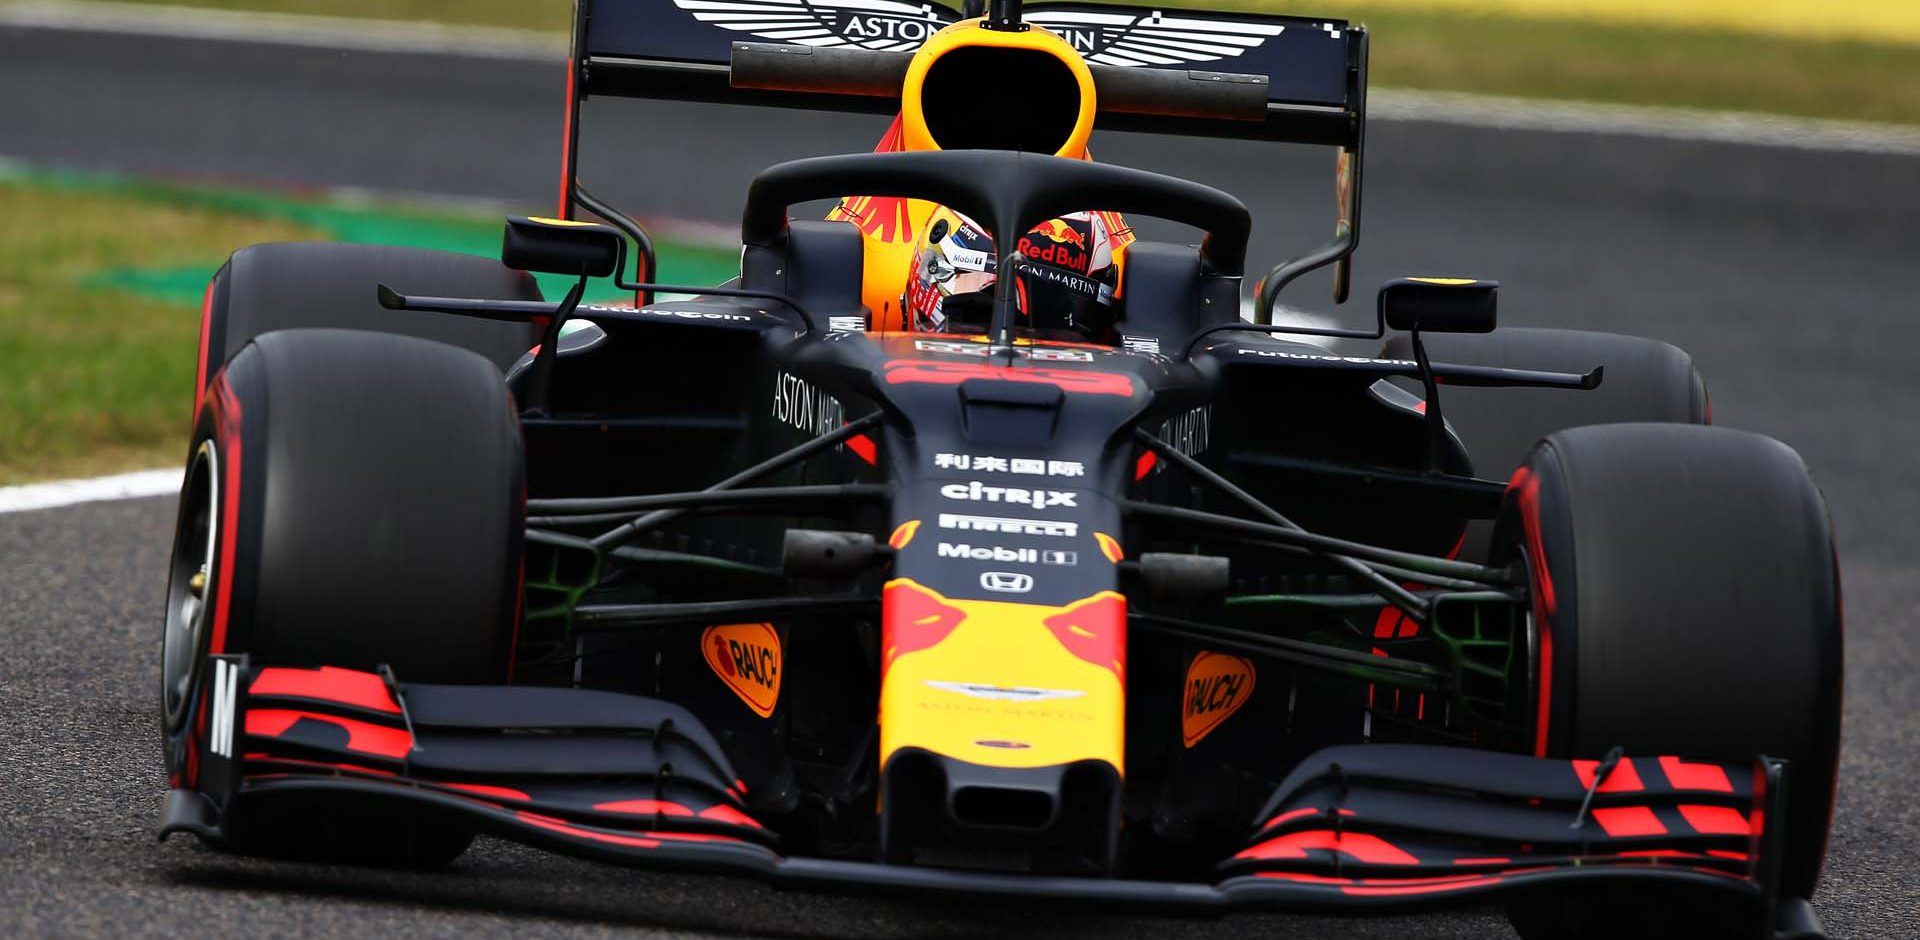 SUZUKA, JAPAN - OCTOBER 11: Max Verstappen of the Netherlands driving the (33) Aston Martin Red Bull Racing RB15 on track during practice for the F1 Grand Prix of Japan at Suzuka Circuit on October 11, 2019 in Suzuka, Japan. (Photo by Charles Coates/Getty Images) // Getty Images / Red Bull Content Pool  // AP-21U9495UD1W11 // Usage for editorial use only //